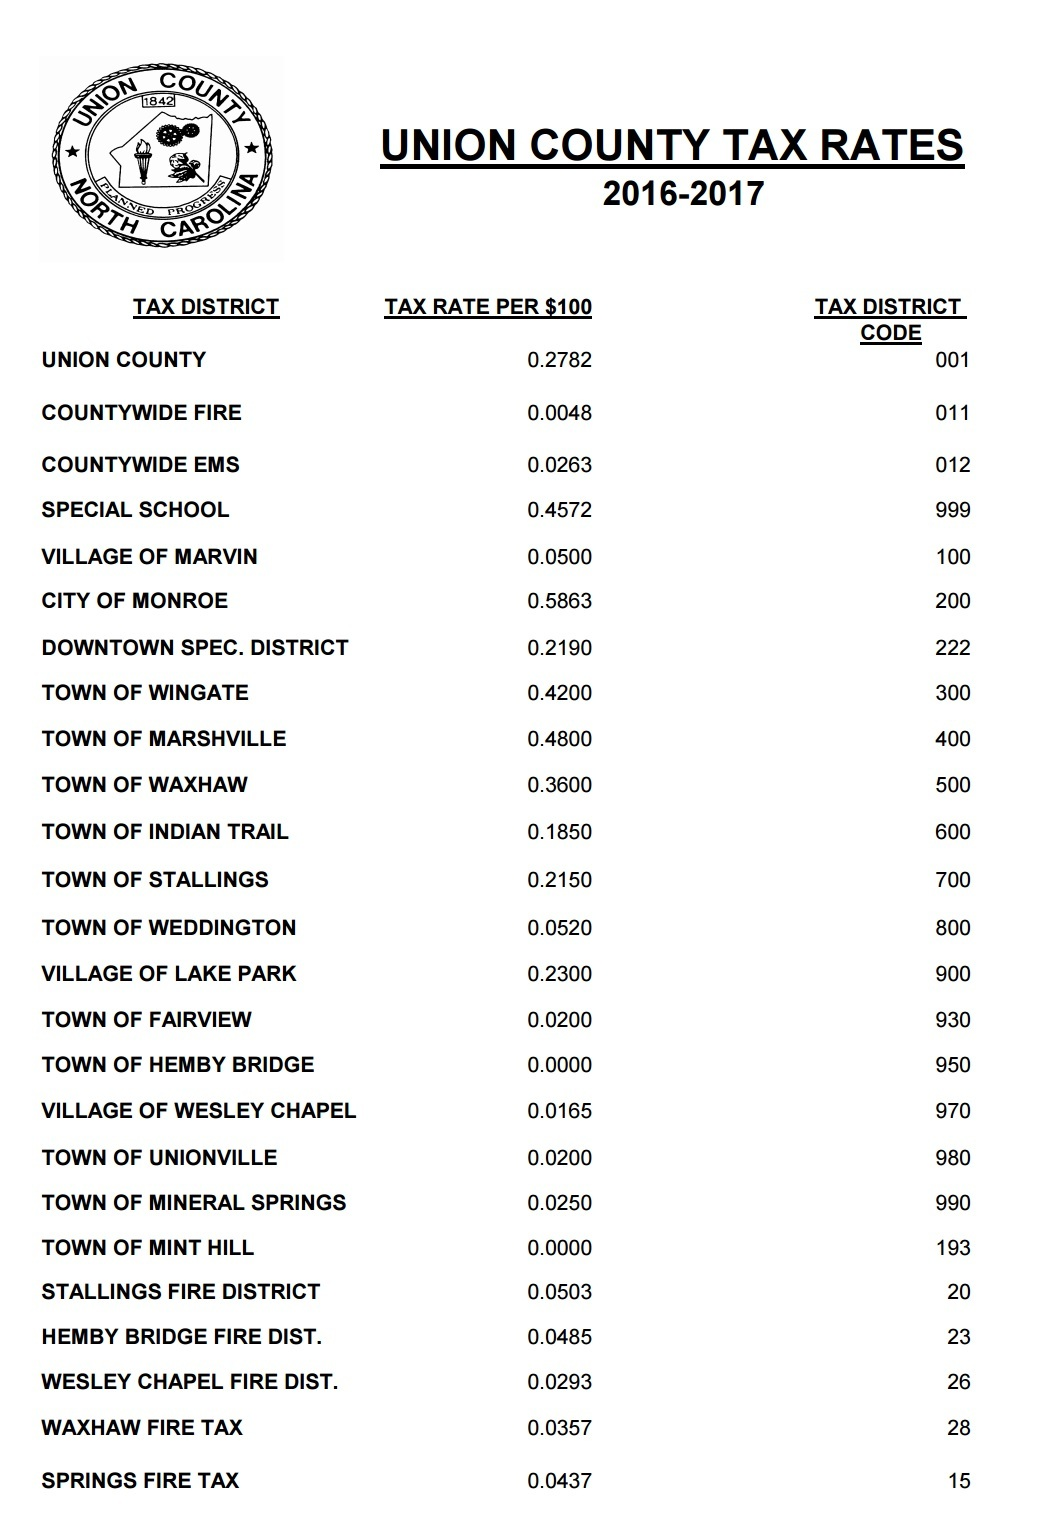 2017 Property Tax Rates For Union County, NC